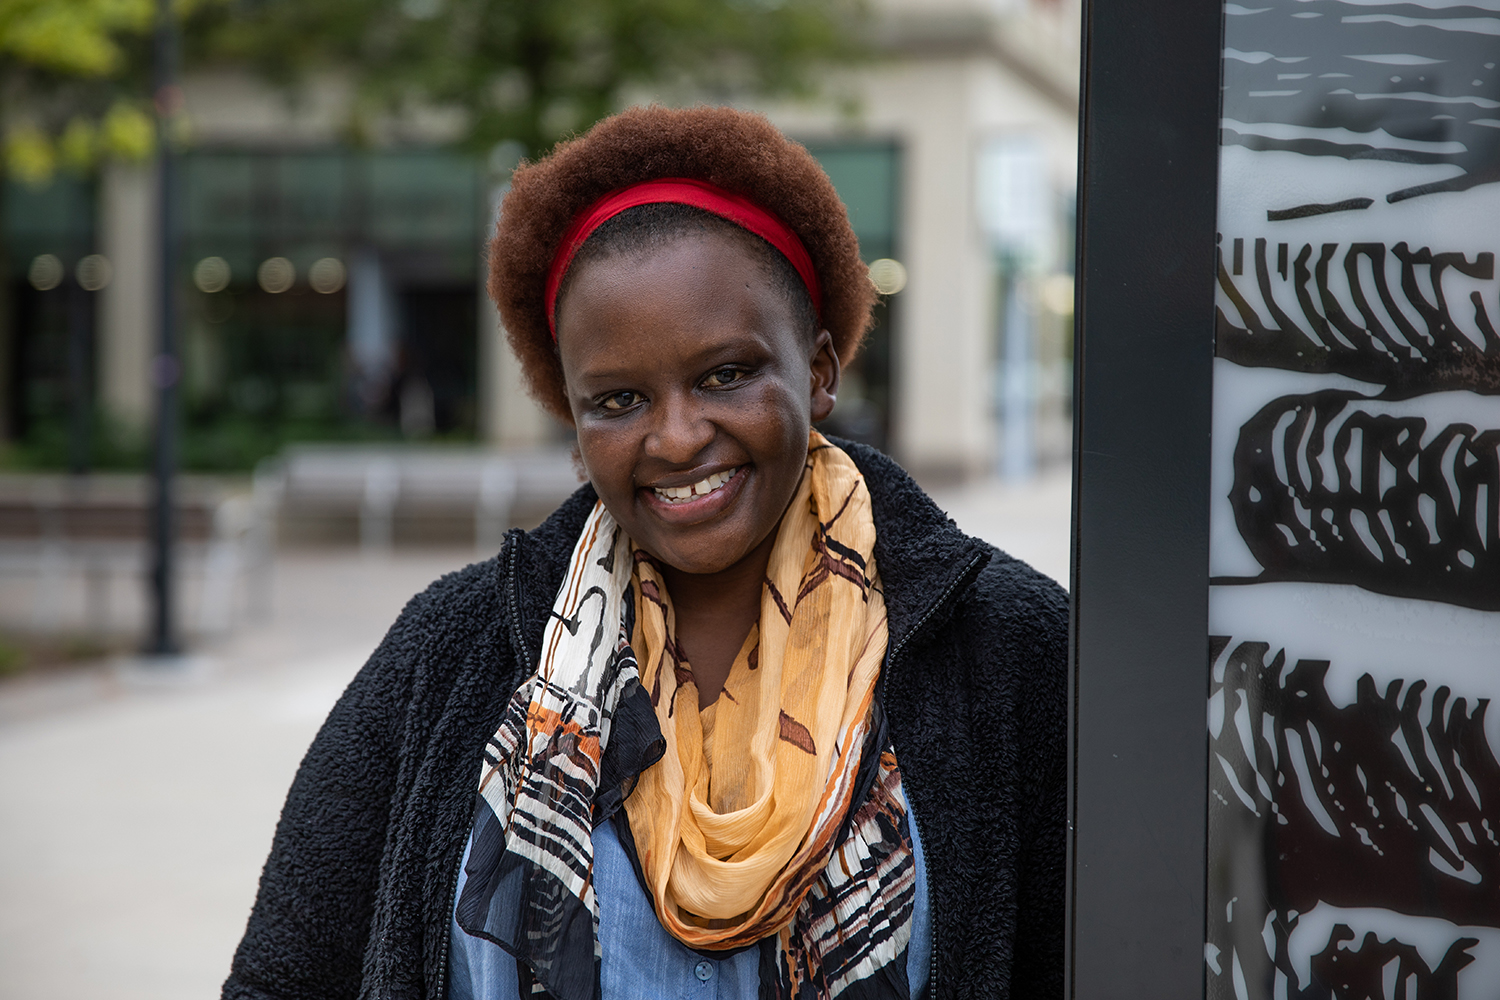 Ph.D. student Barbara Kagima poses for a portrait in downtown Iowa City on October 6th, 2019. Kagima is studying the treatment of hypertension and public health awareness in Kenyan villages.